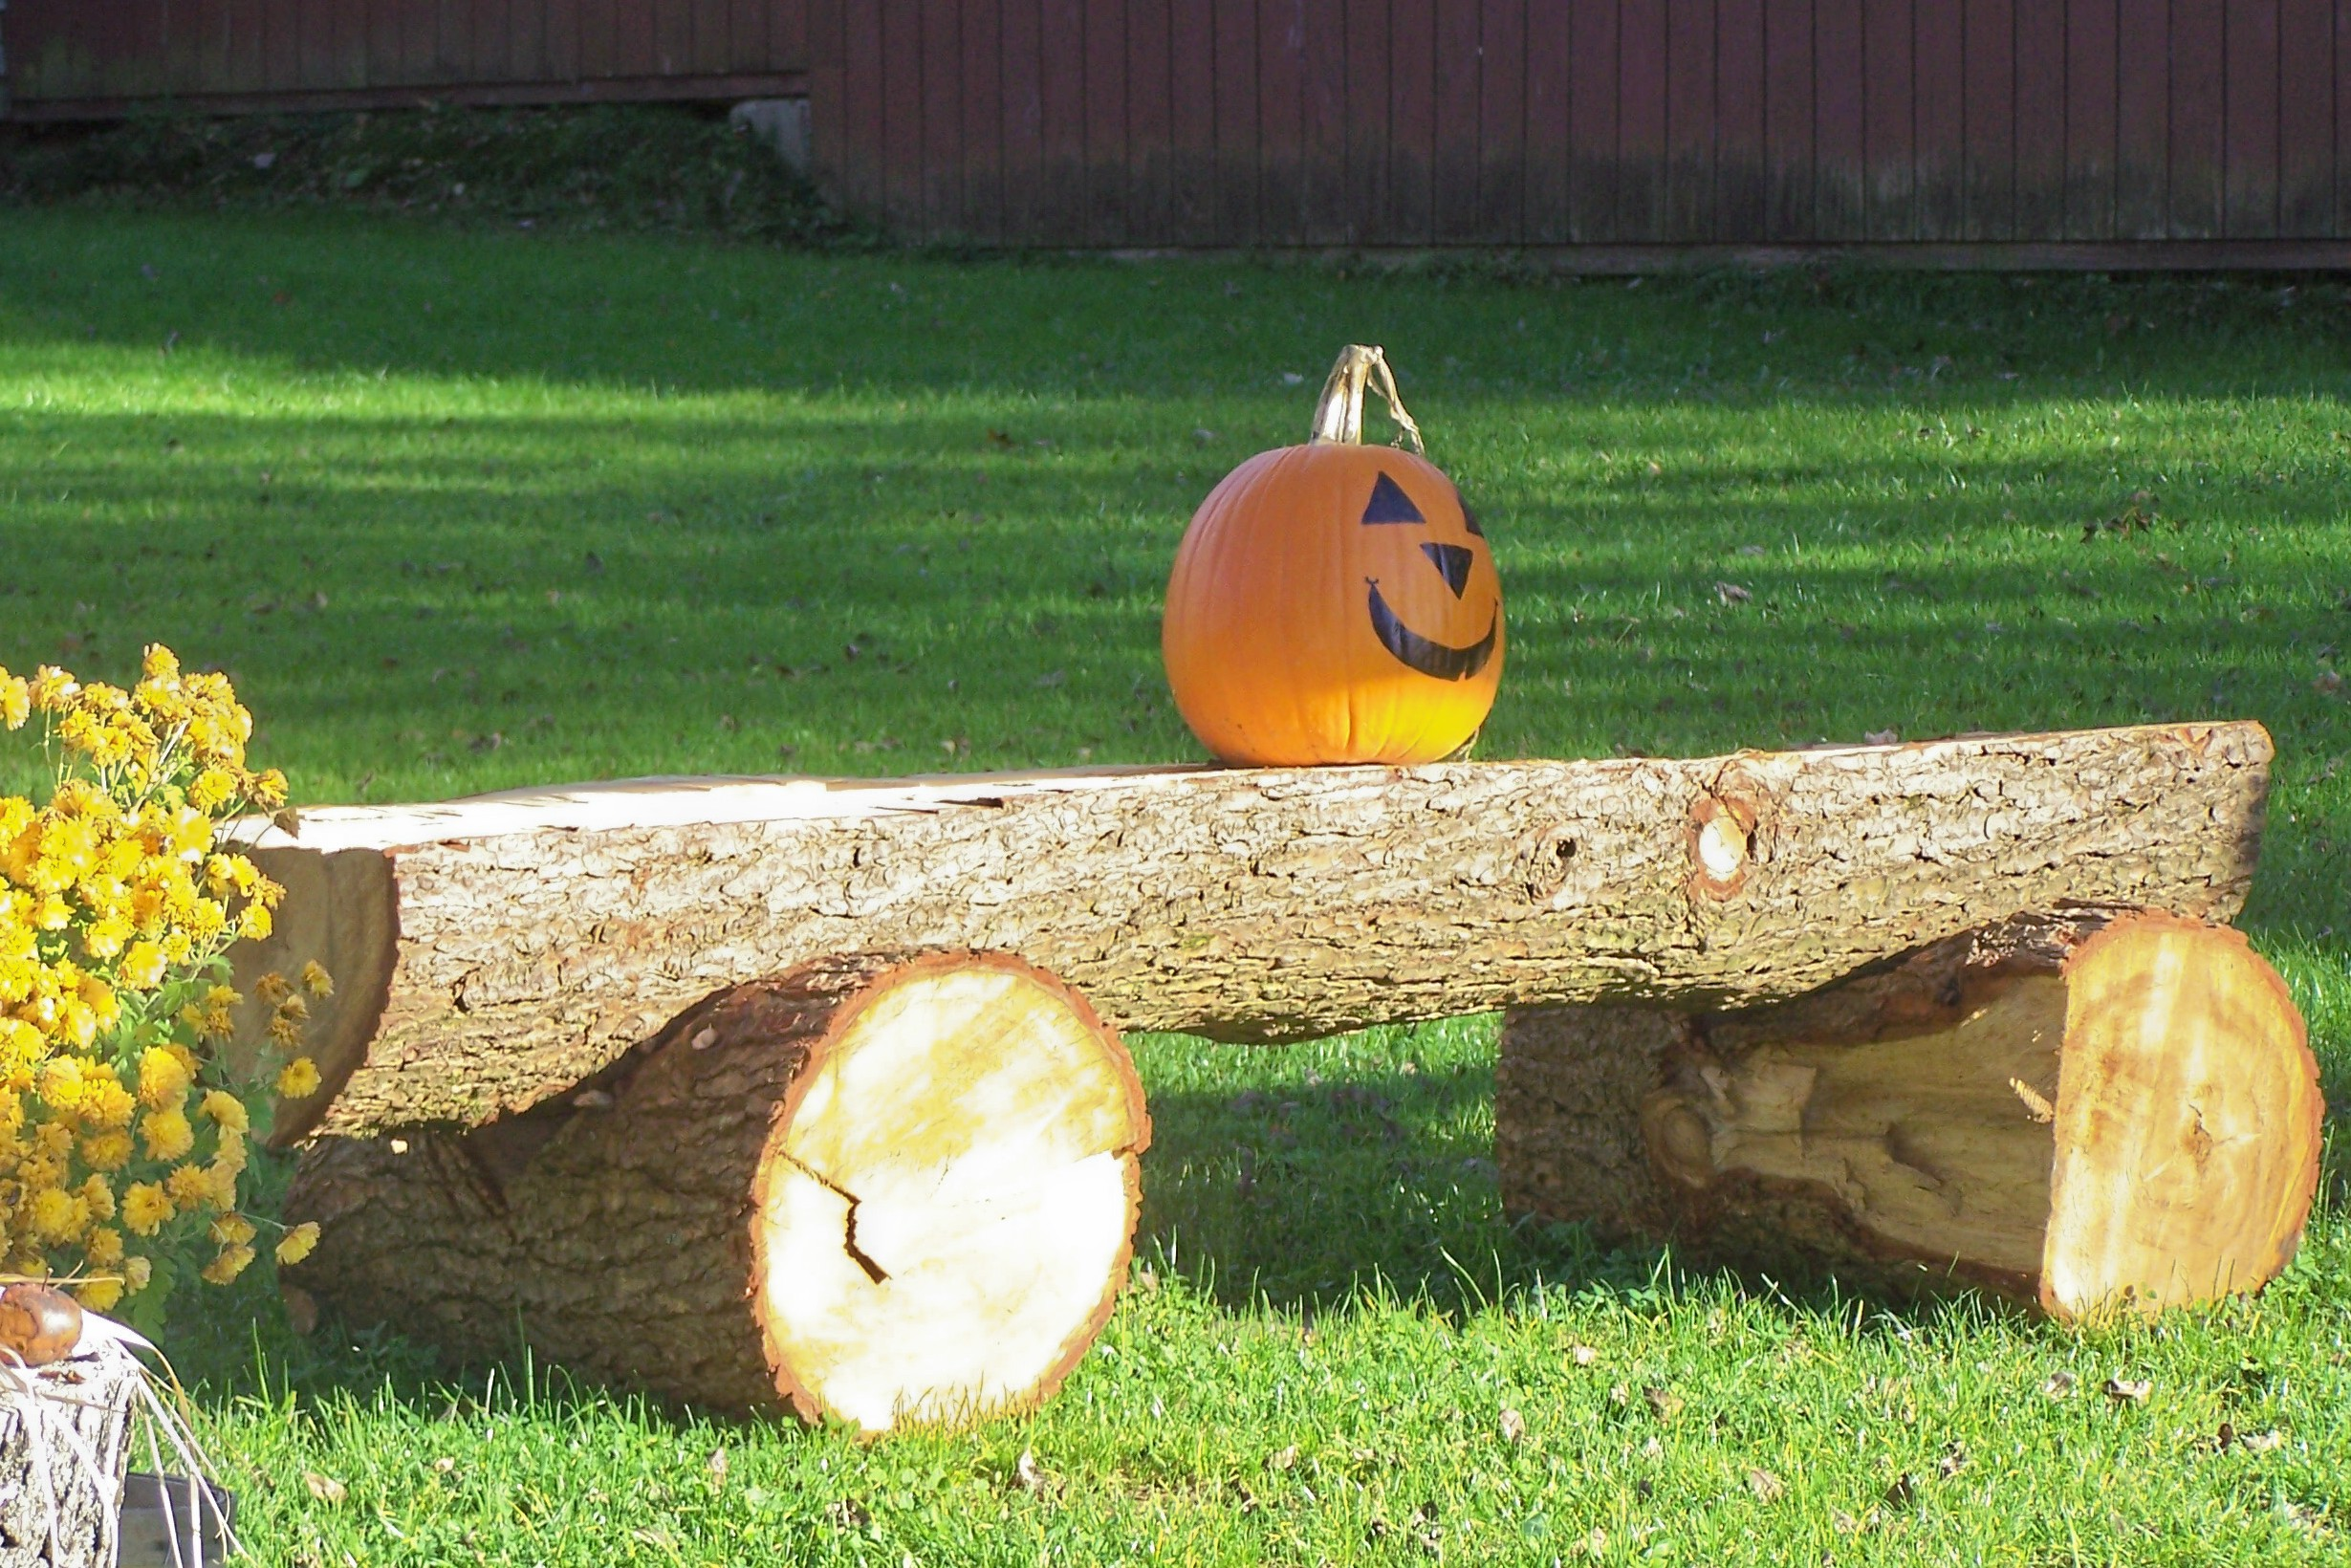 pumpkinonbench.jpg